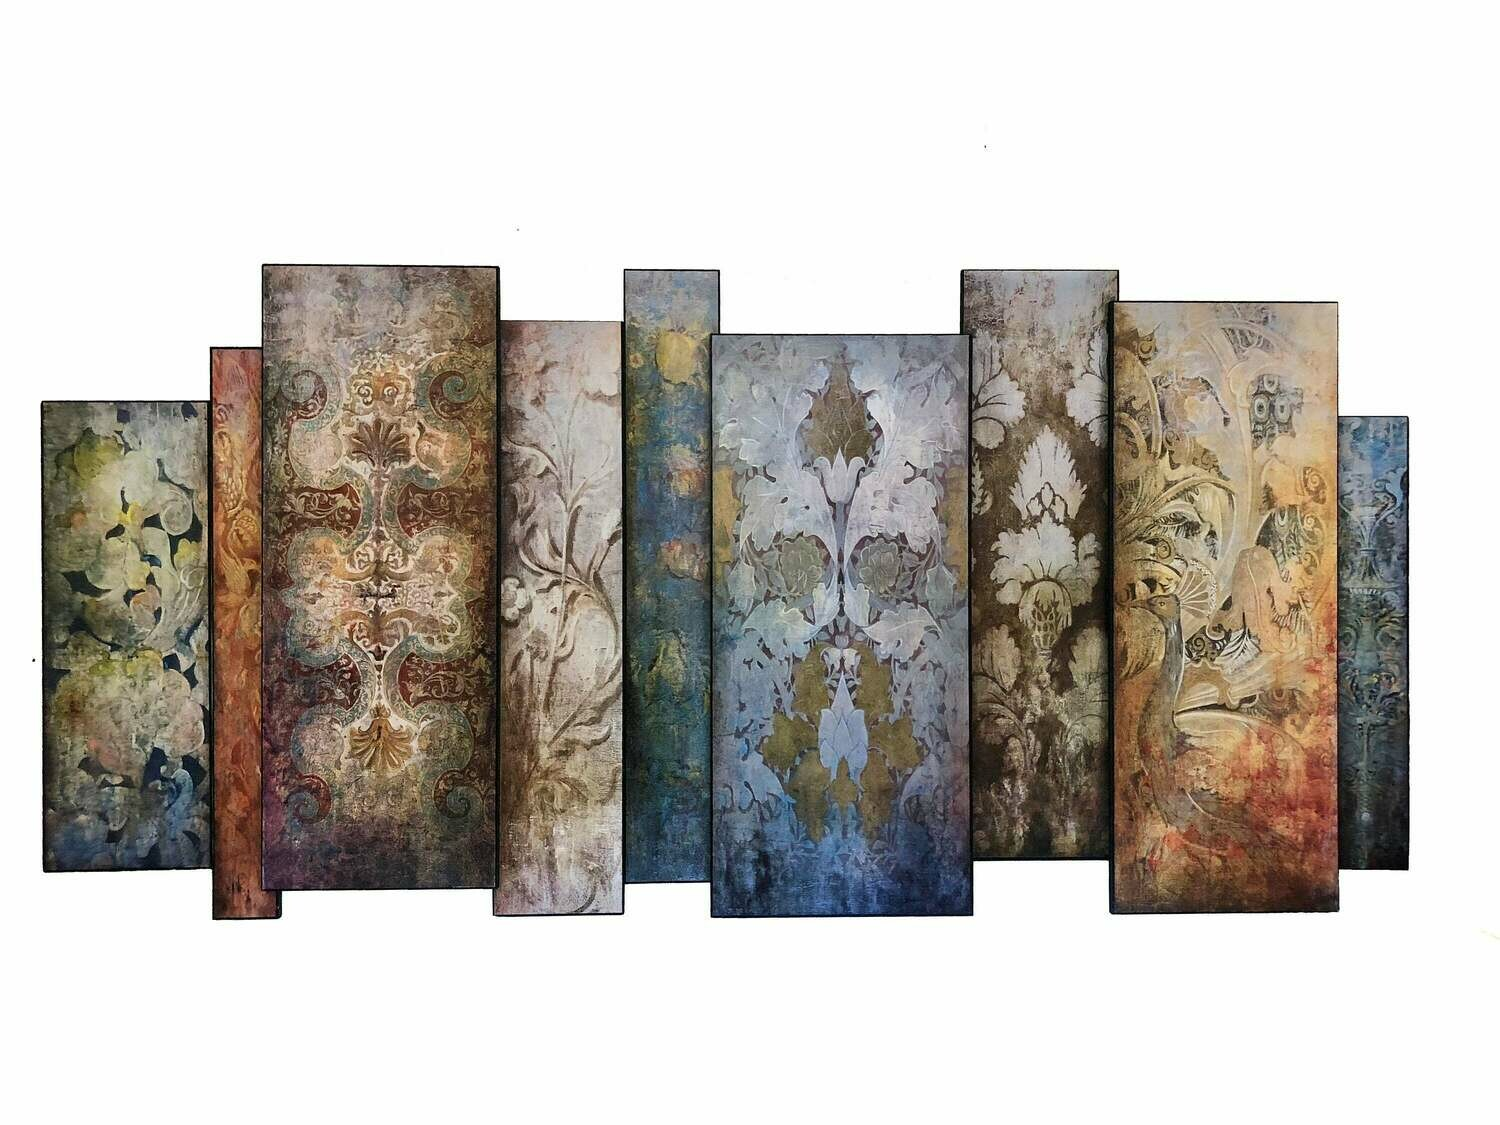 66 Inch Art Panel Faded Memory Offset Panels Mural Home Decor